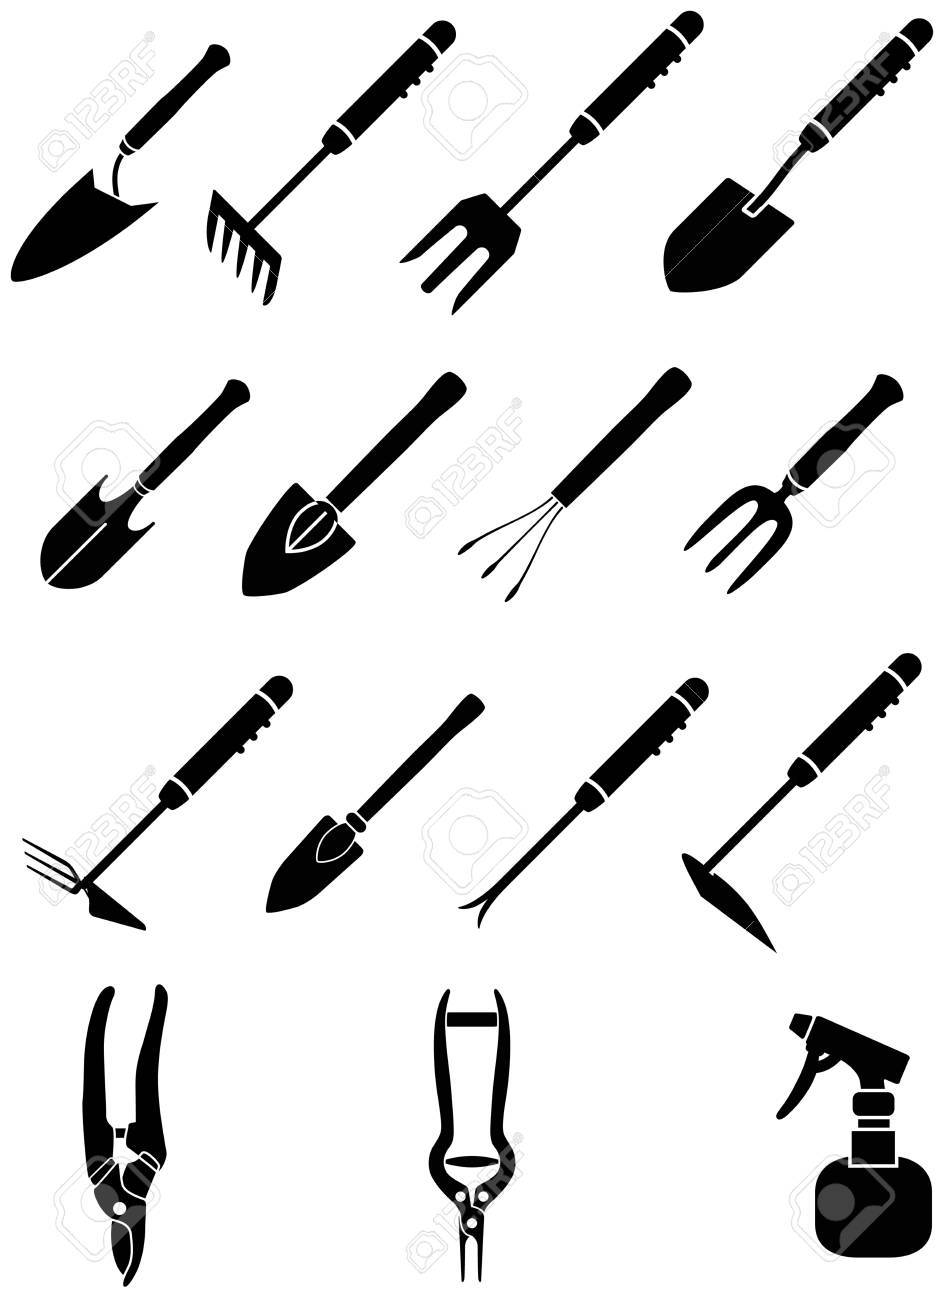 Mini Garden Equipment For Hobbies And Relax Royalty Free Cliparts